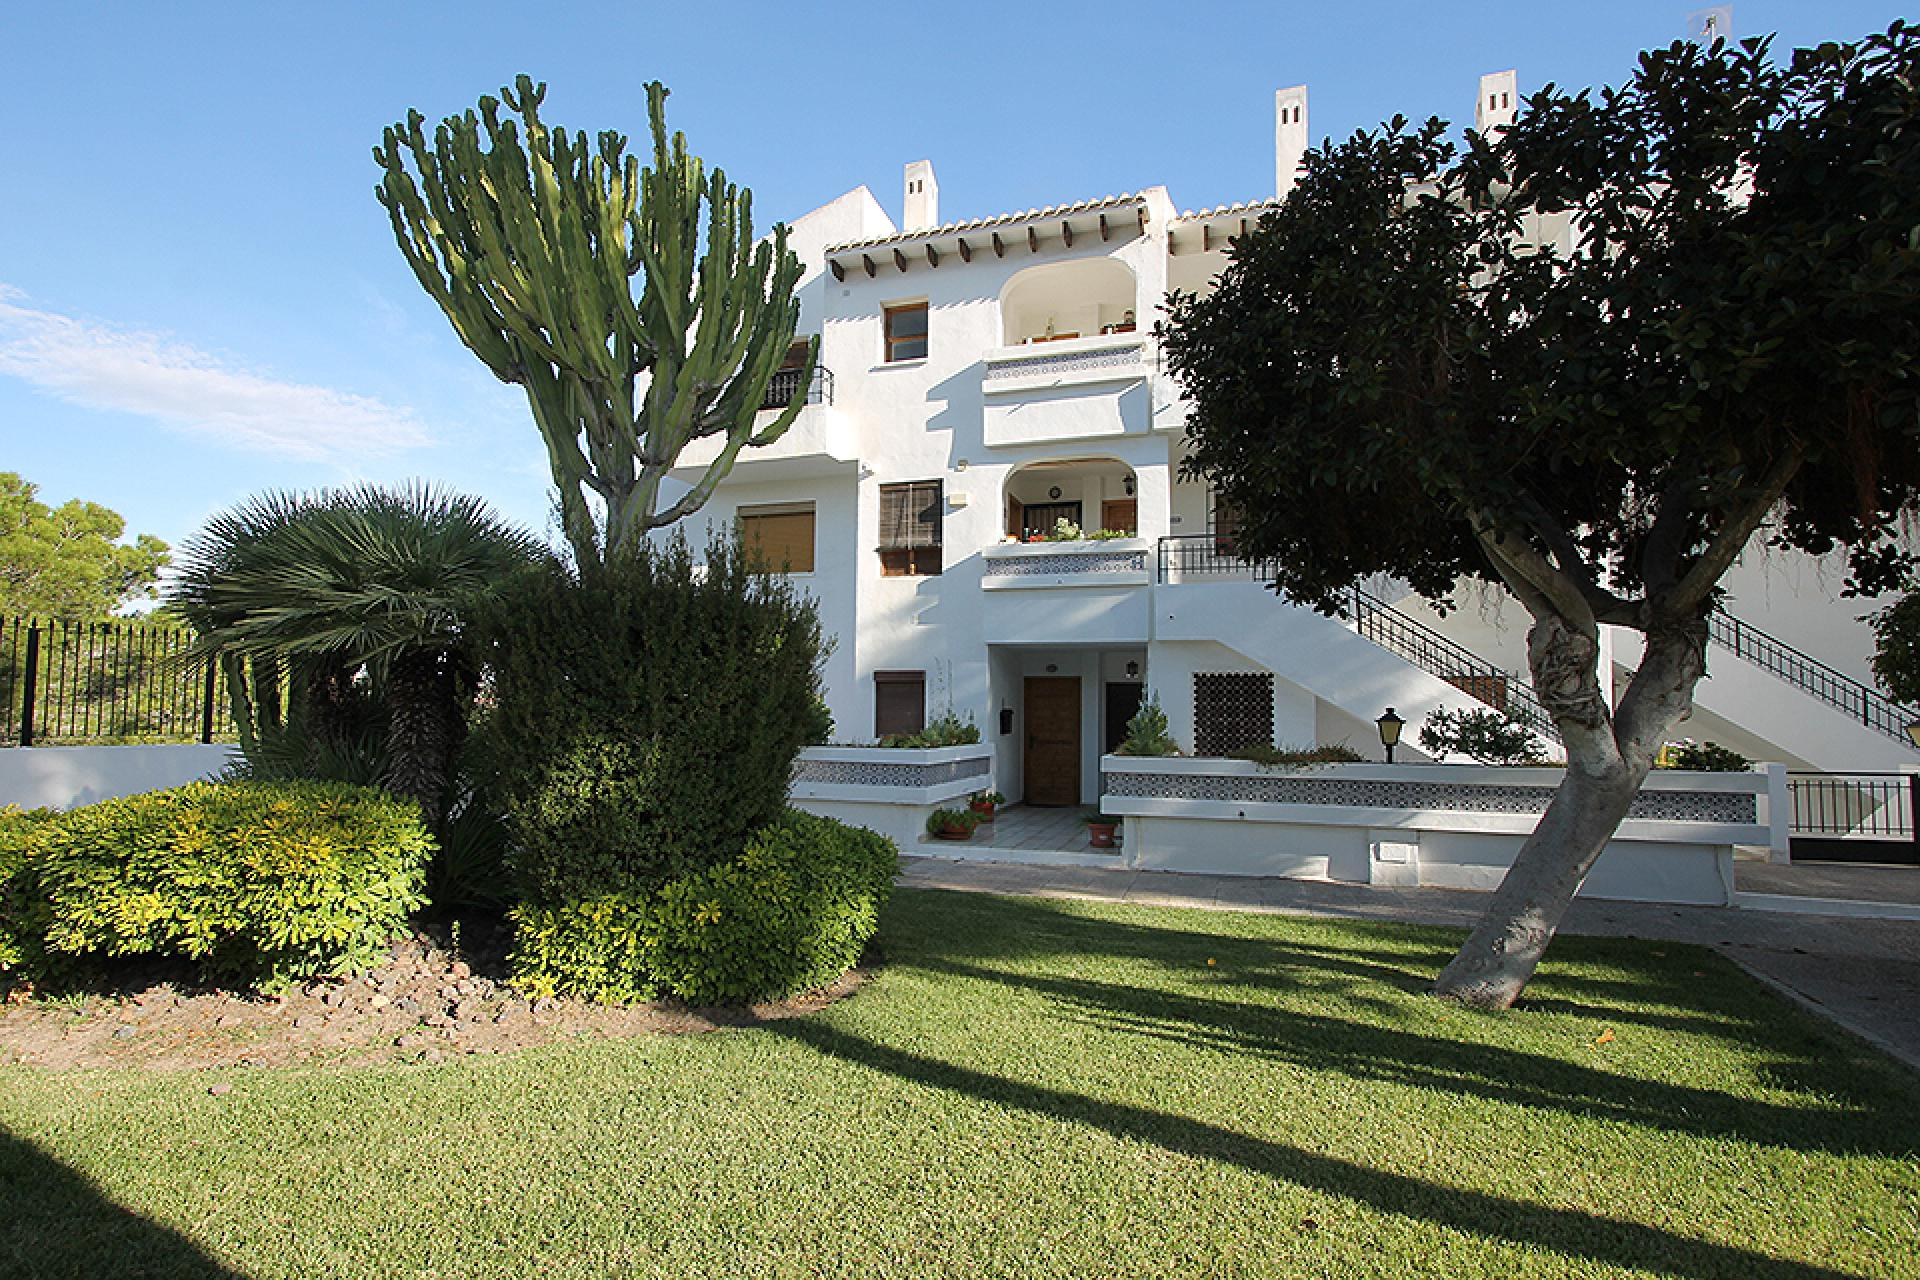 Apartment in Dehesa De Campoamor (Alicante)